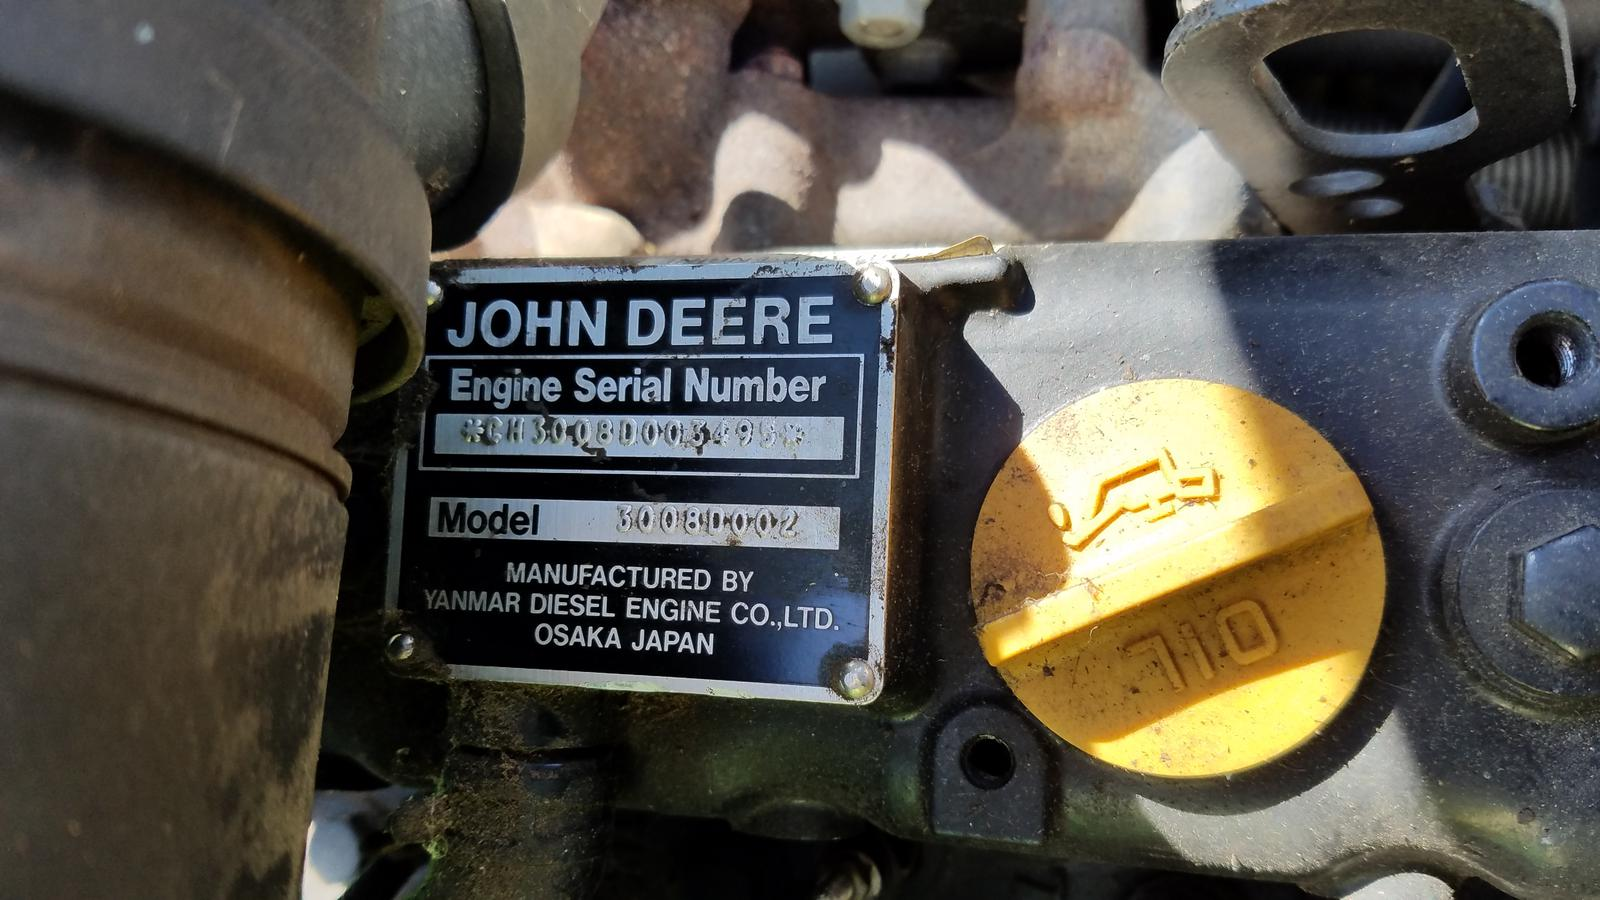 John deere 2653a john deere reel mower for sale in johnstown pa john deere reel mower 2653a sciox Images